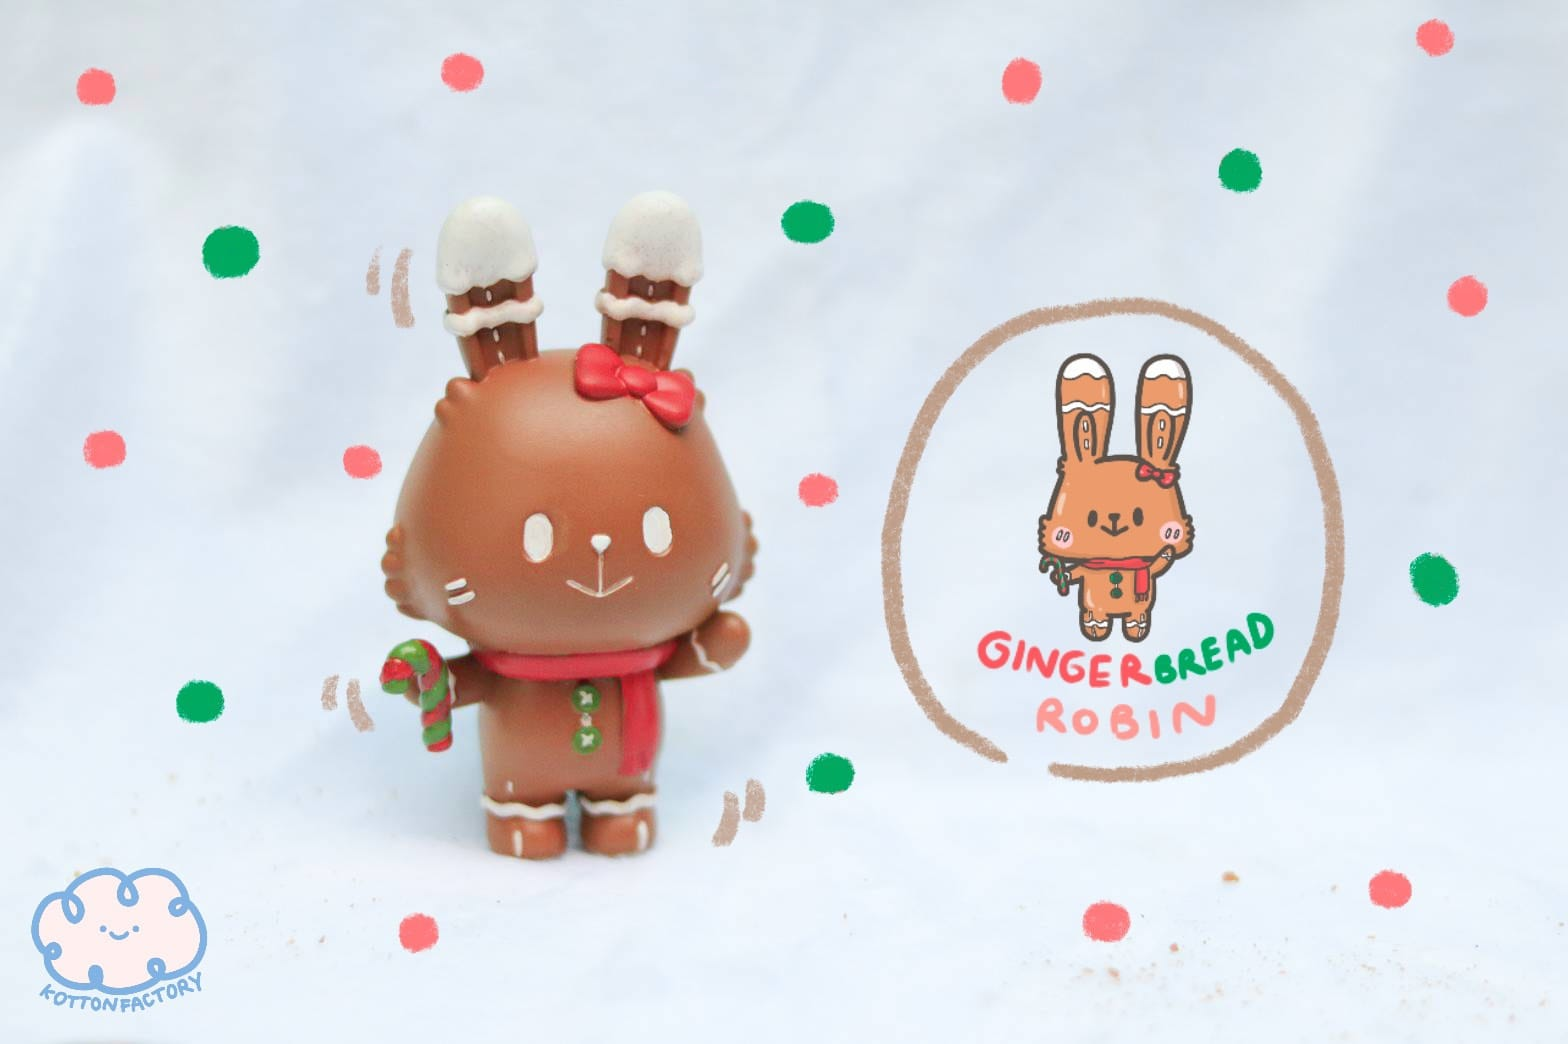 Gingerbread Robin by Kotten Factory - Preorder